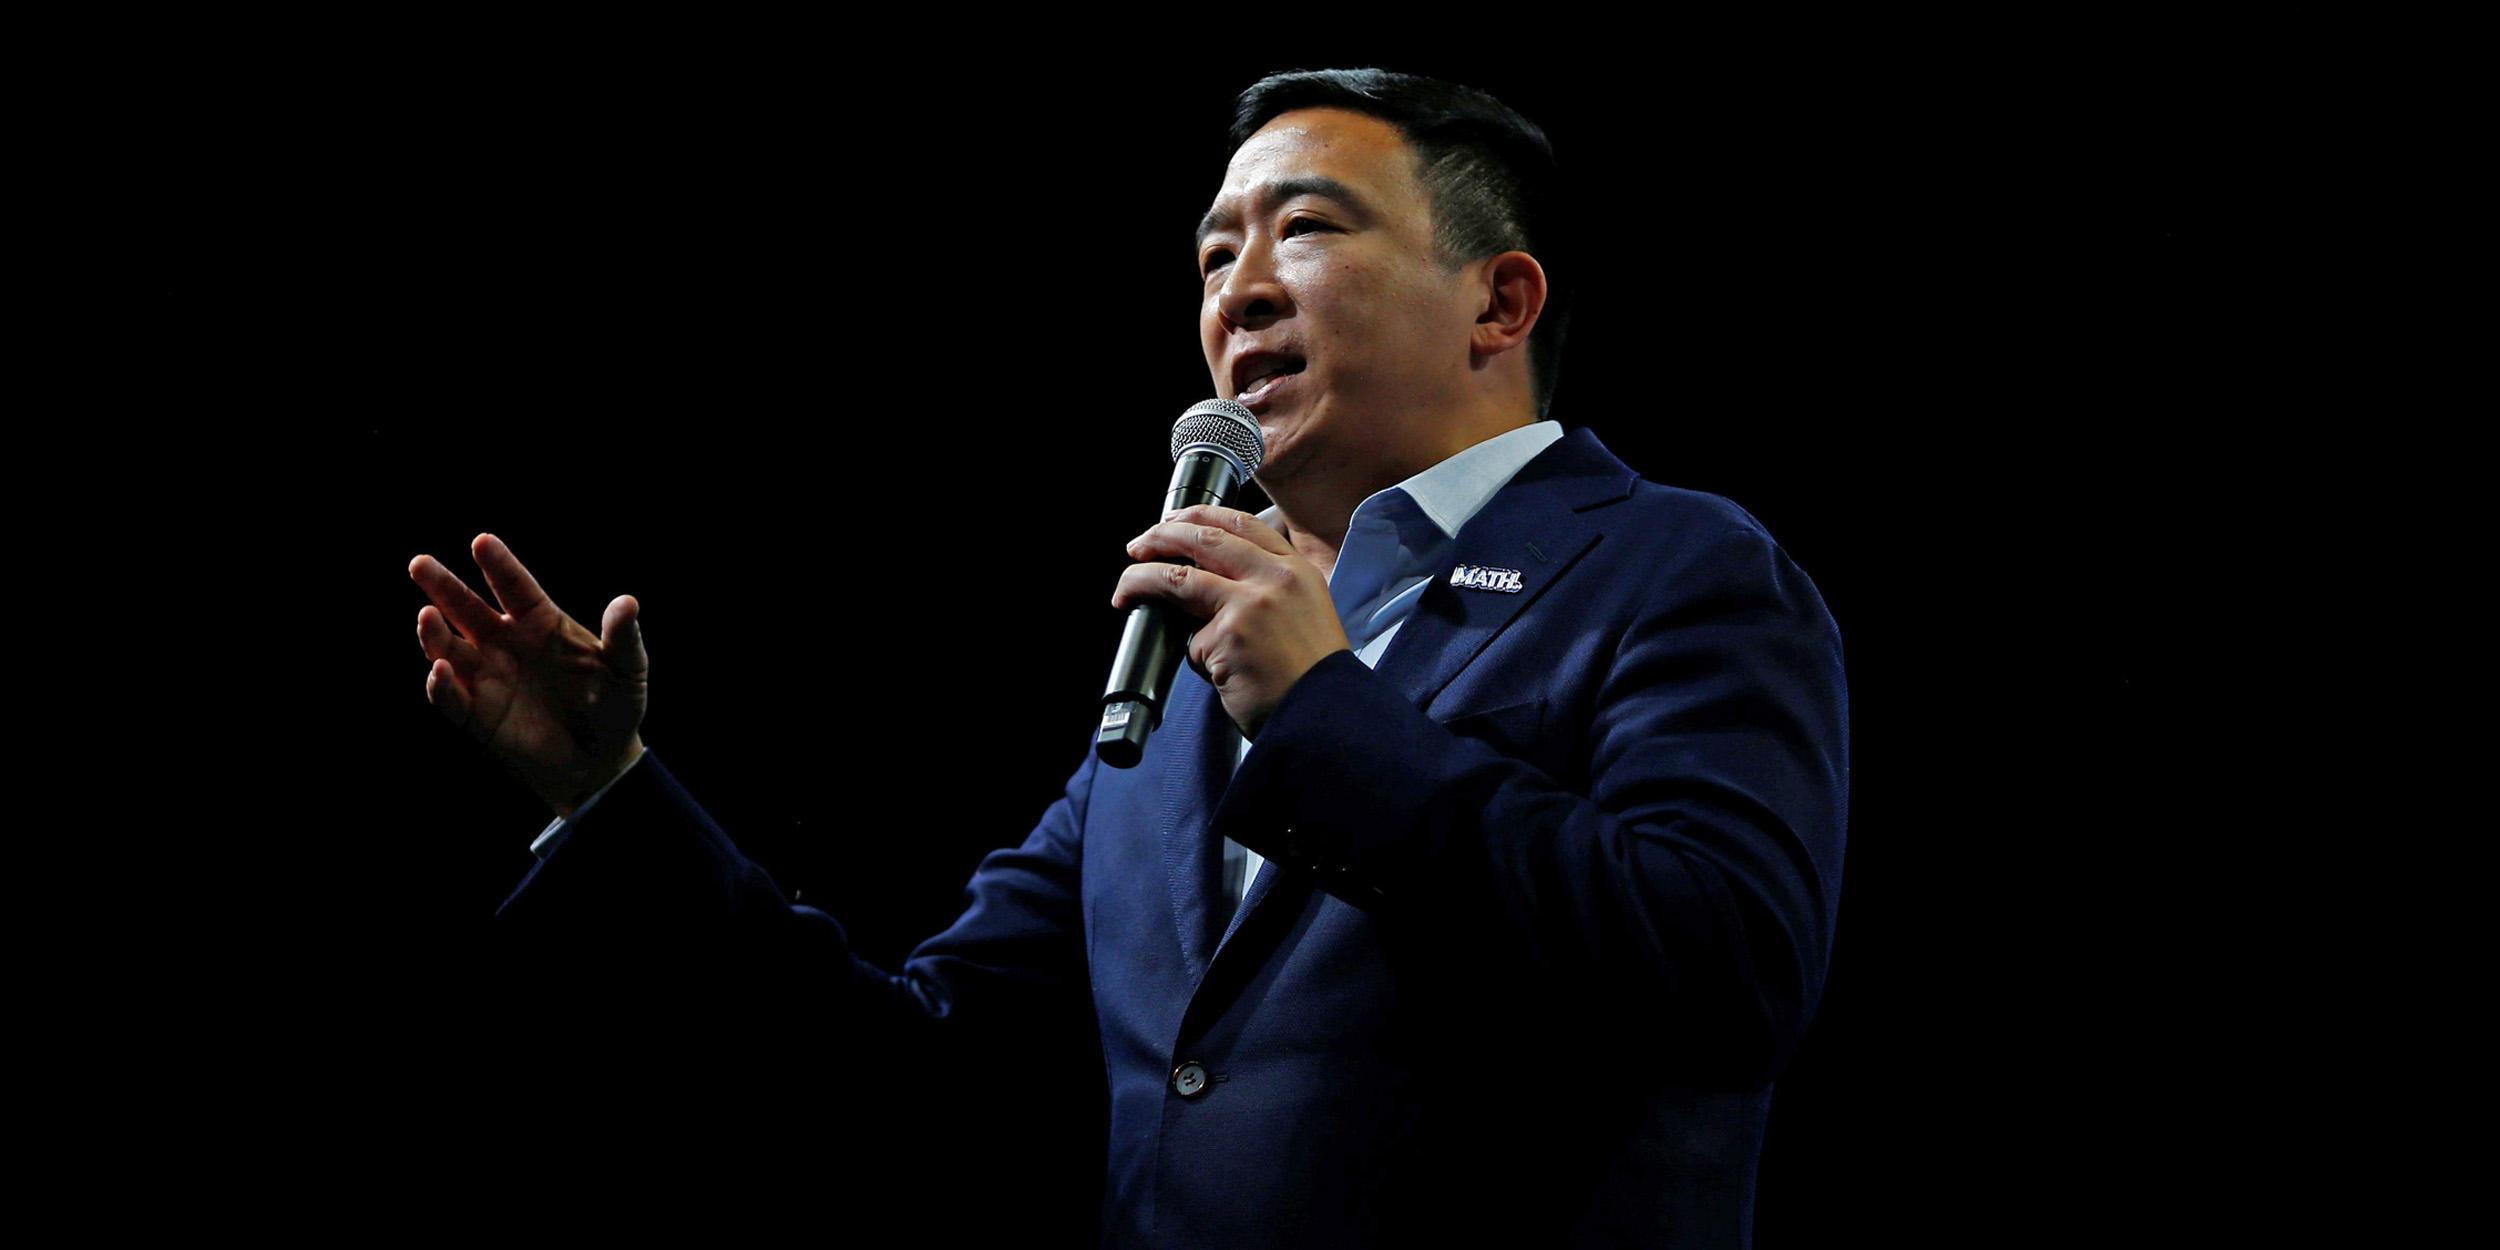 Andrew Yang urges Asian Americans to vote for Biden